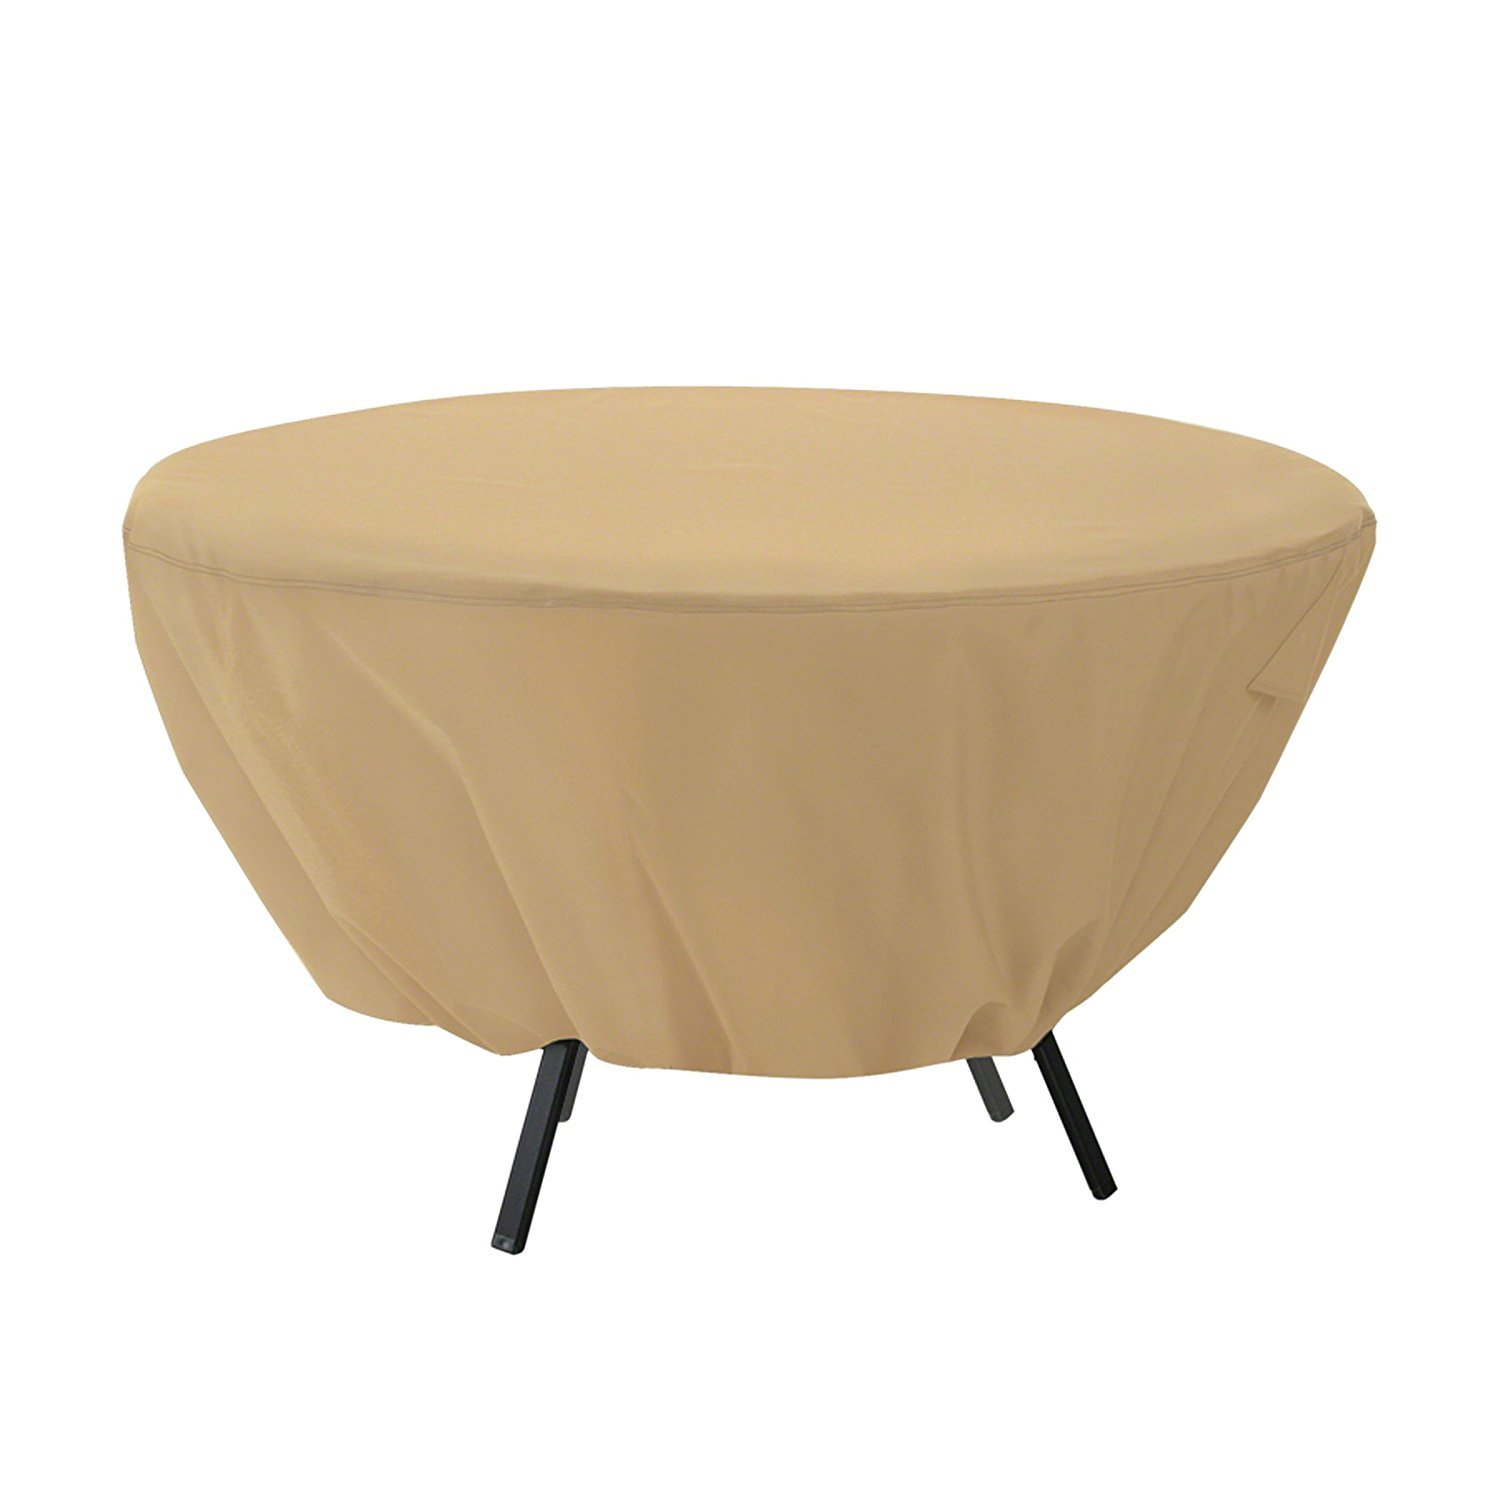 Mitef Waterproof Round Patio Table Cover – Outdoor Furniture Cover 50 inch, Beige